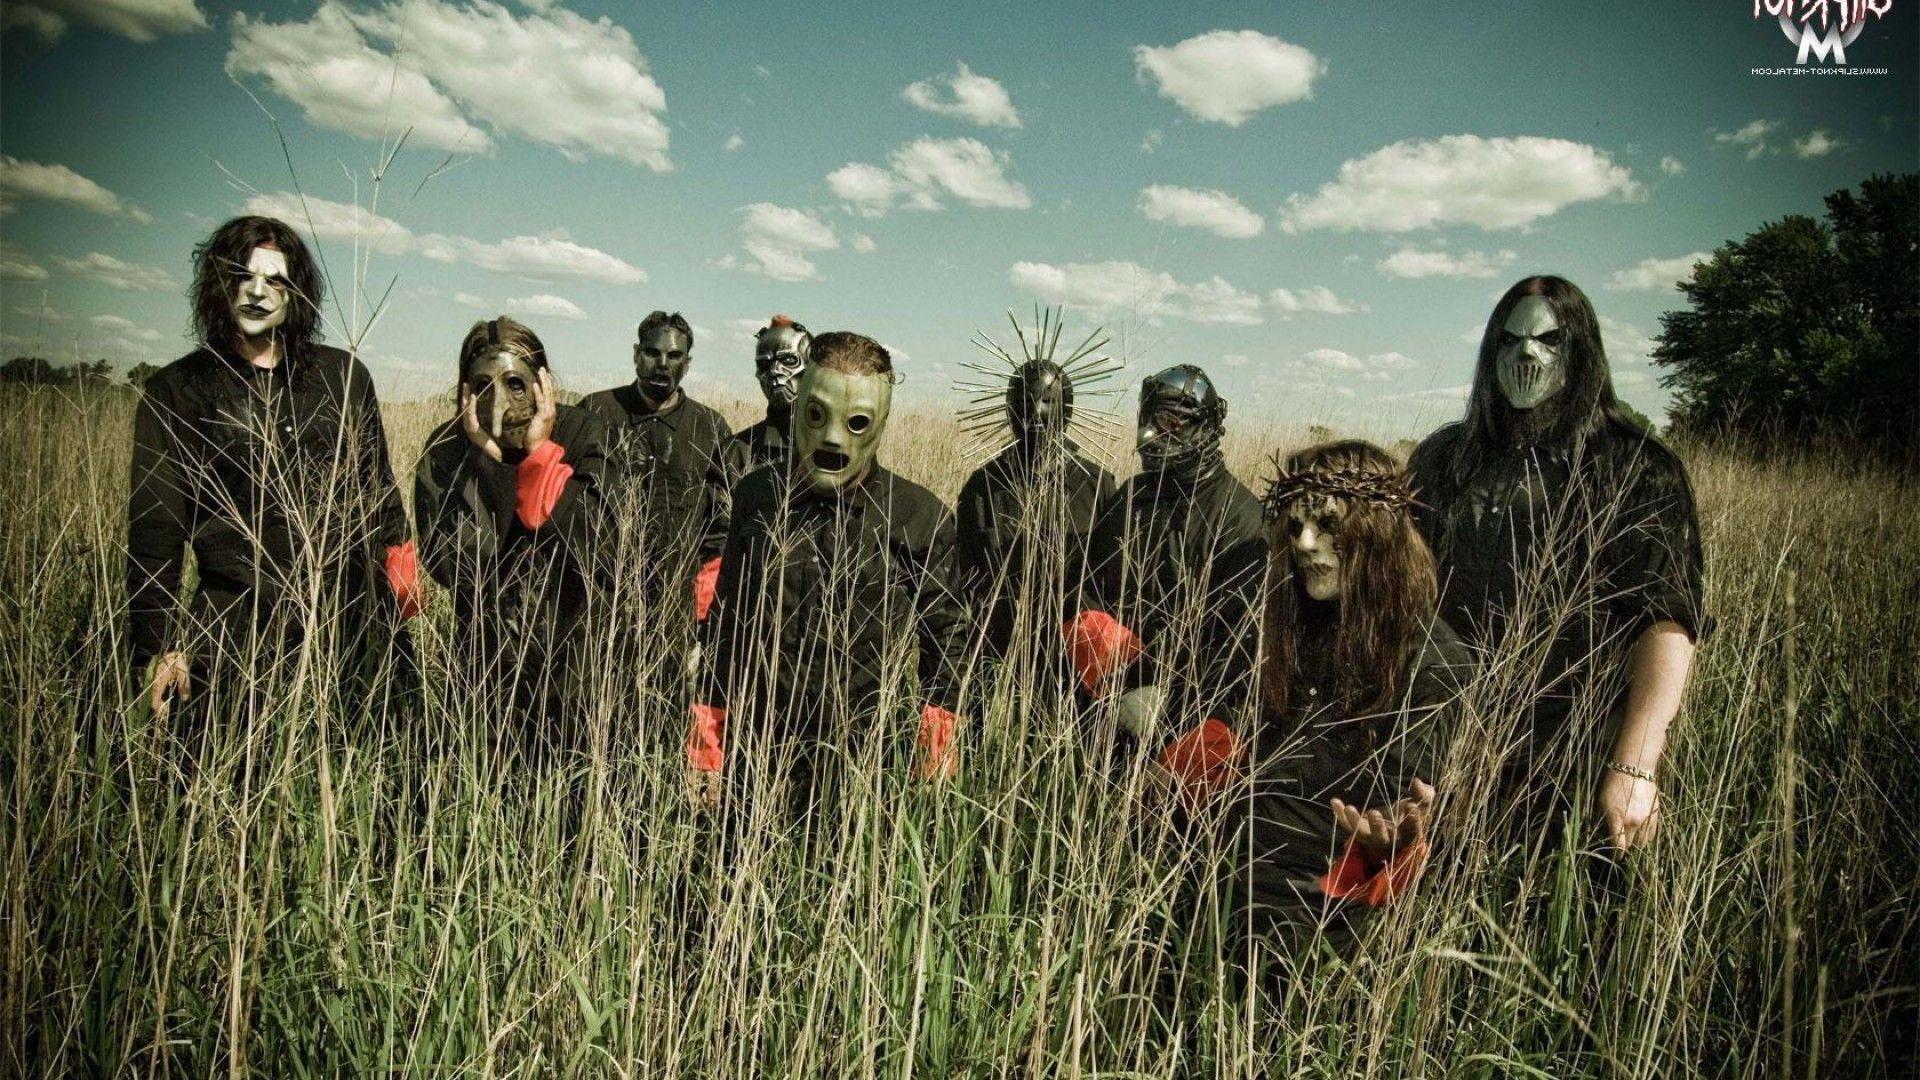 Slipknot Wallpapers - Wallpaper Cave